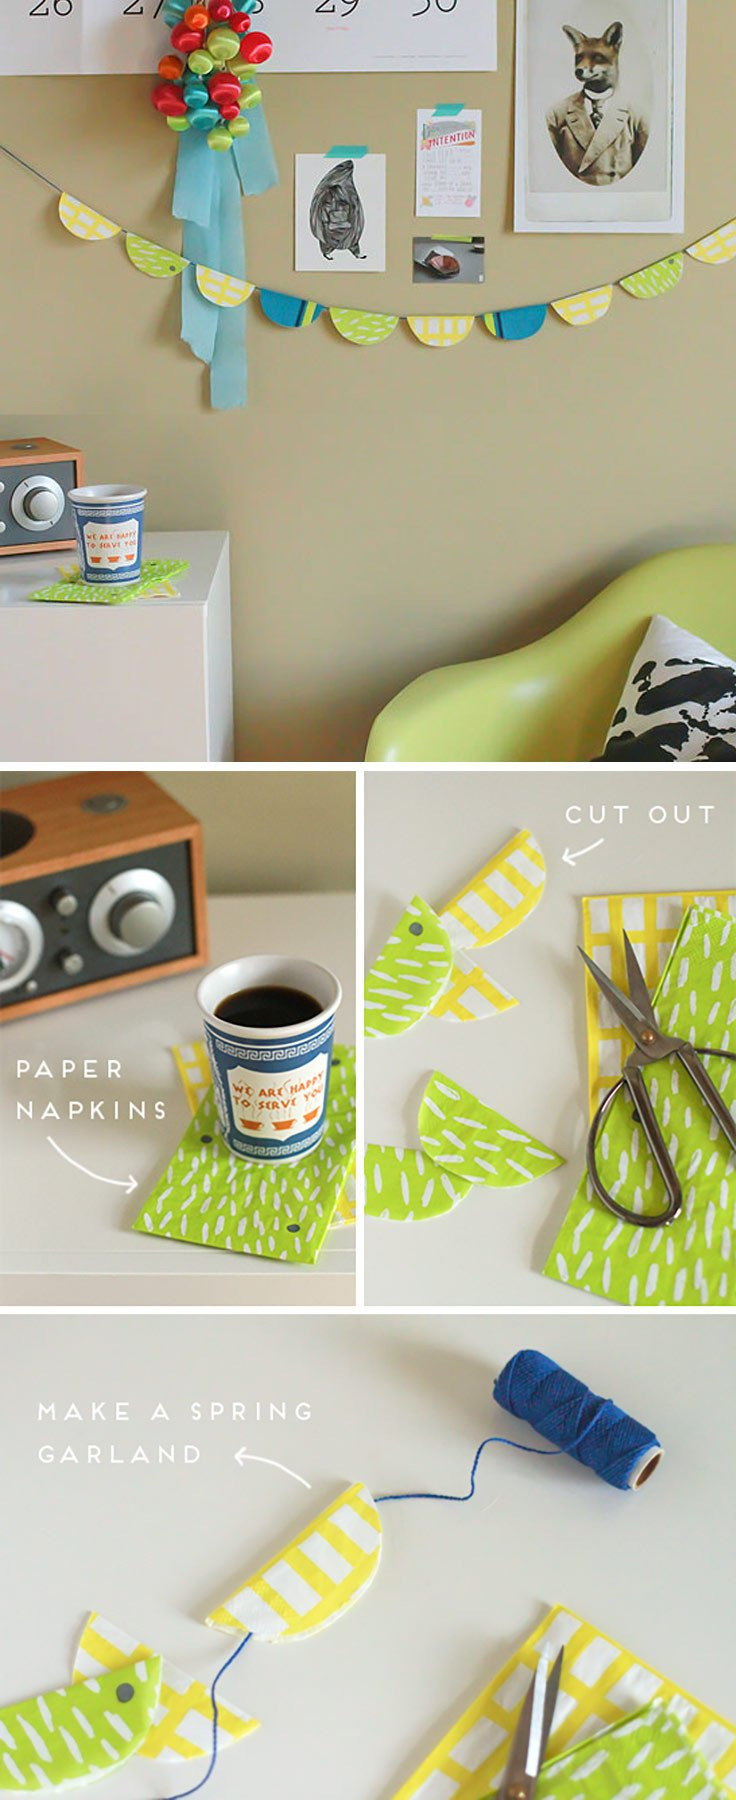 Diy Bedroom Decor for Teens Fresh 37 Insanely Cute Teen Bedroom Ideas for Diy Decor